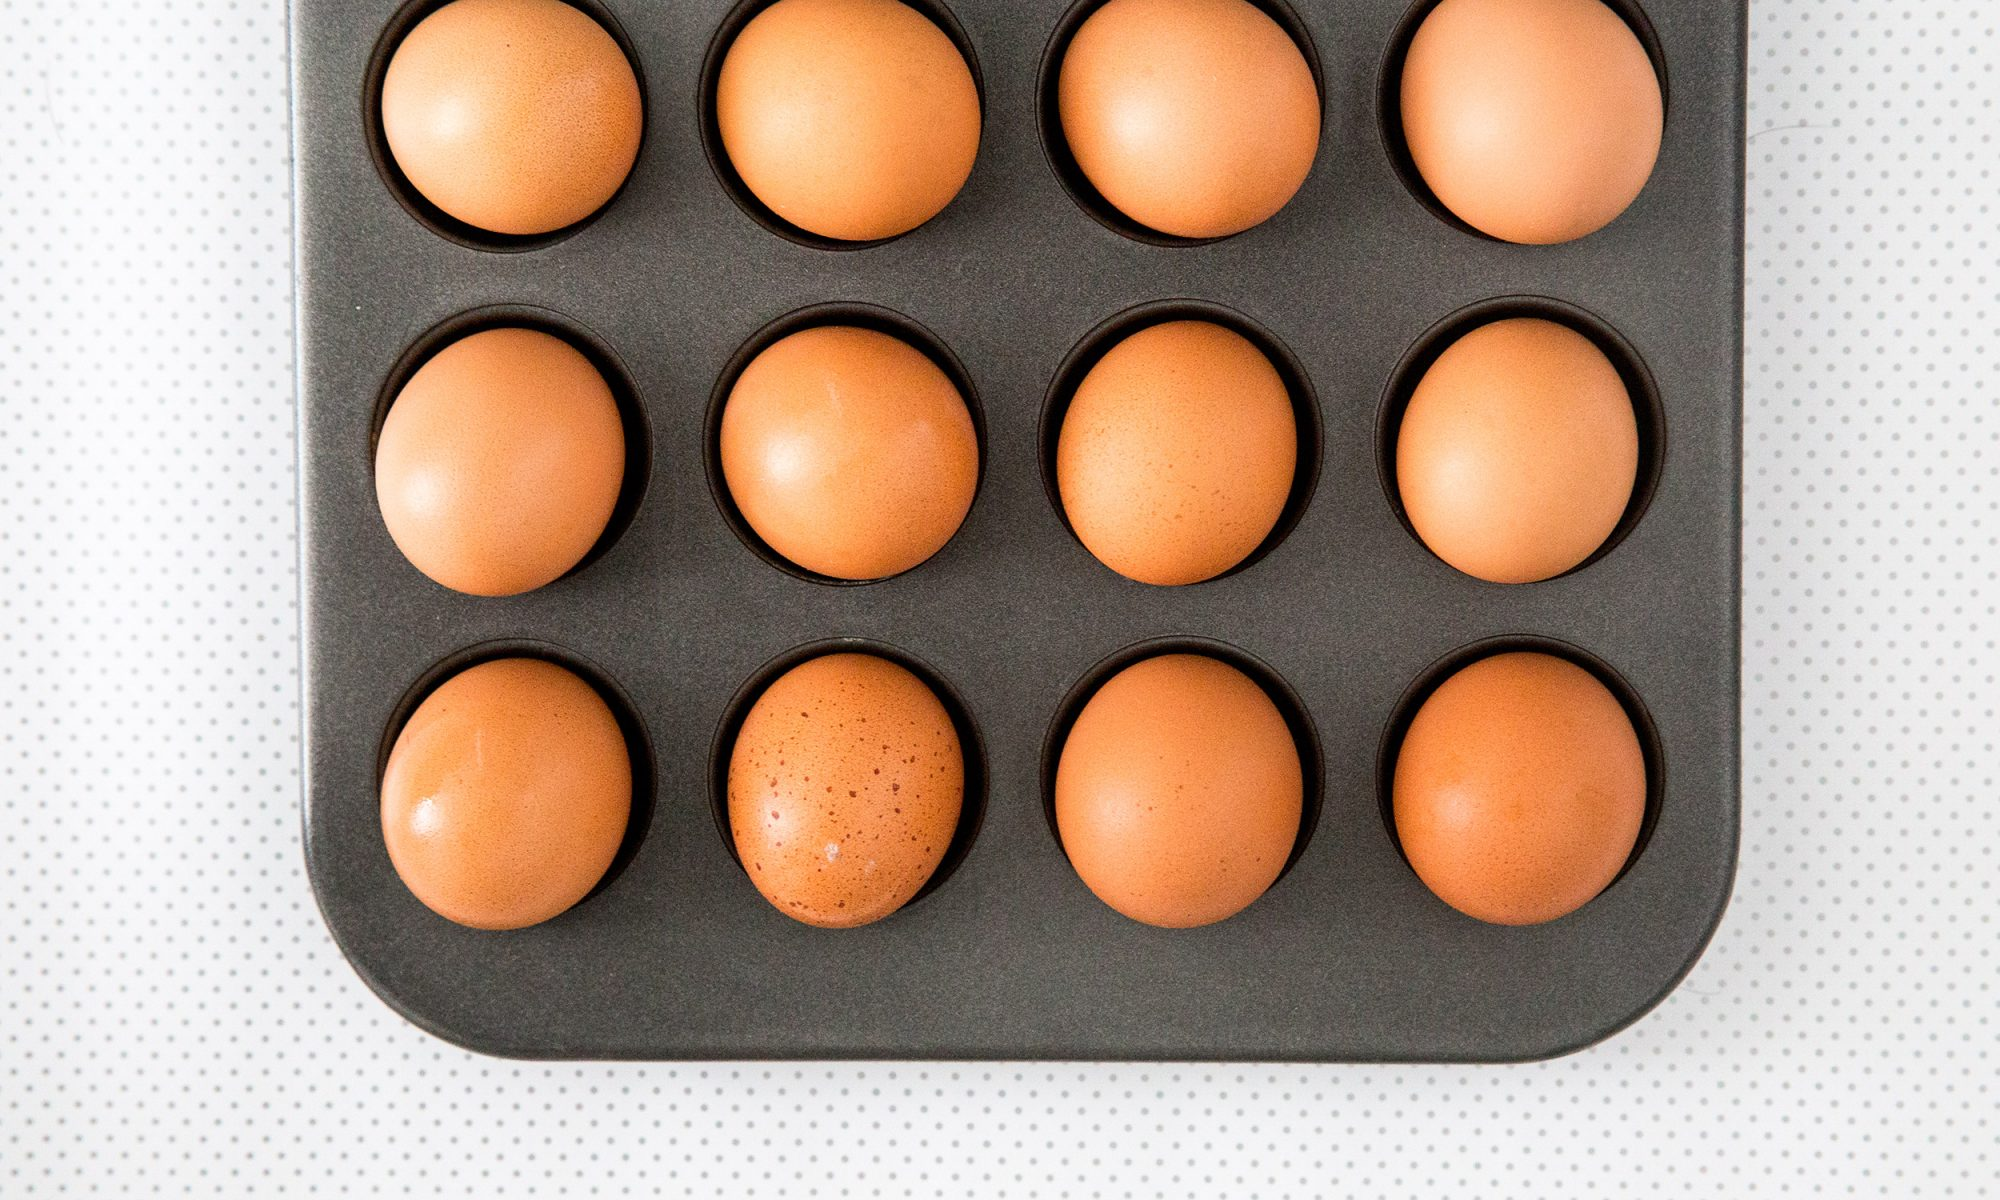 EC: How to Make 24 Hard-Boiled Eggs in the Oven at Once